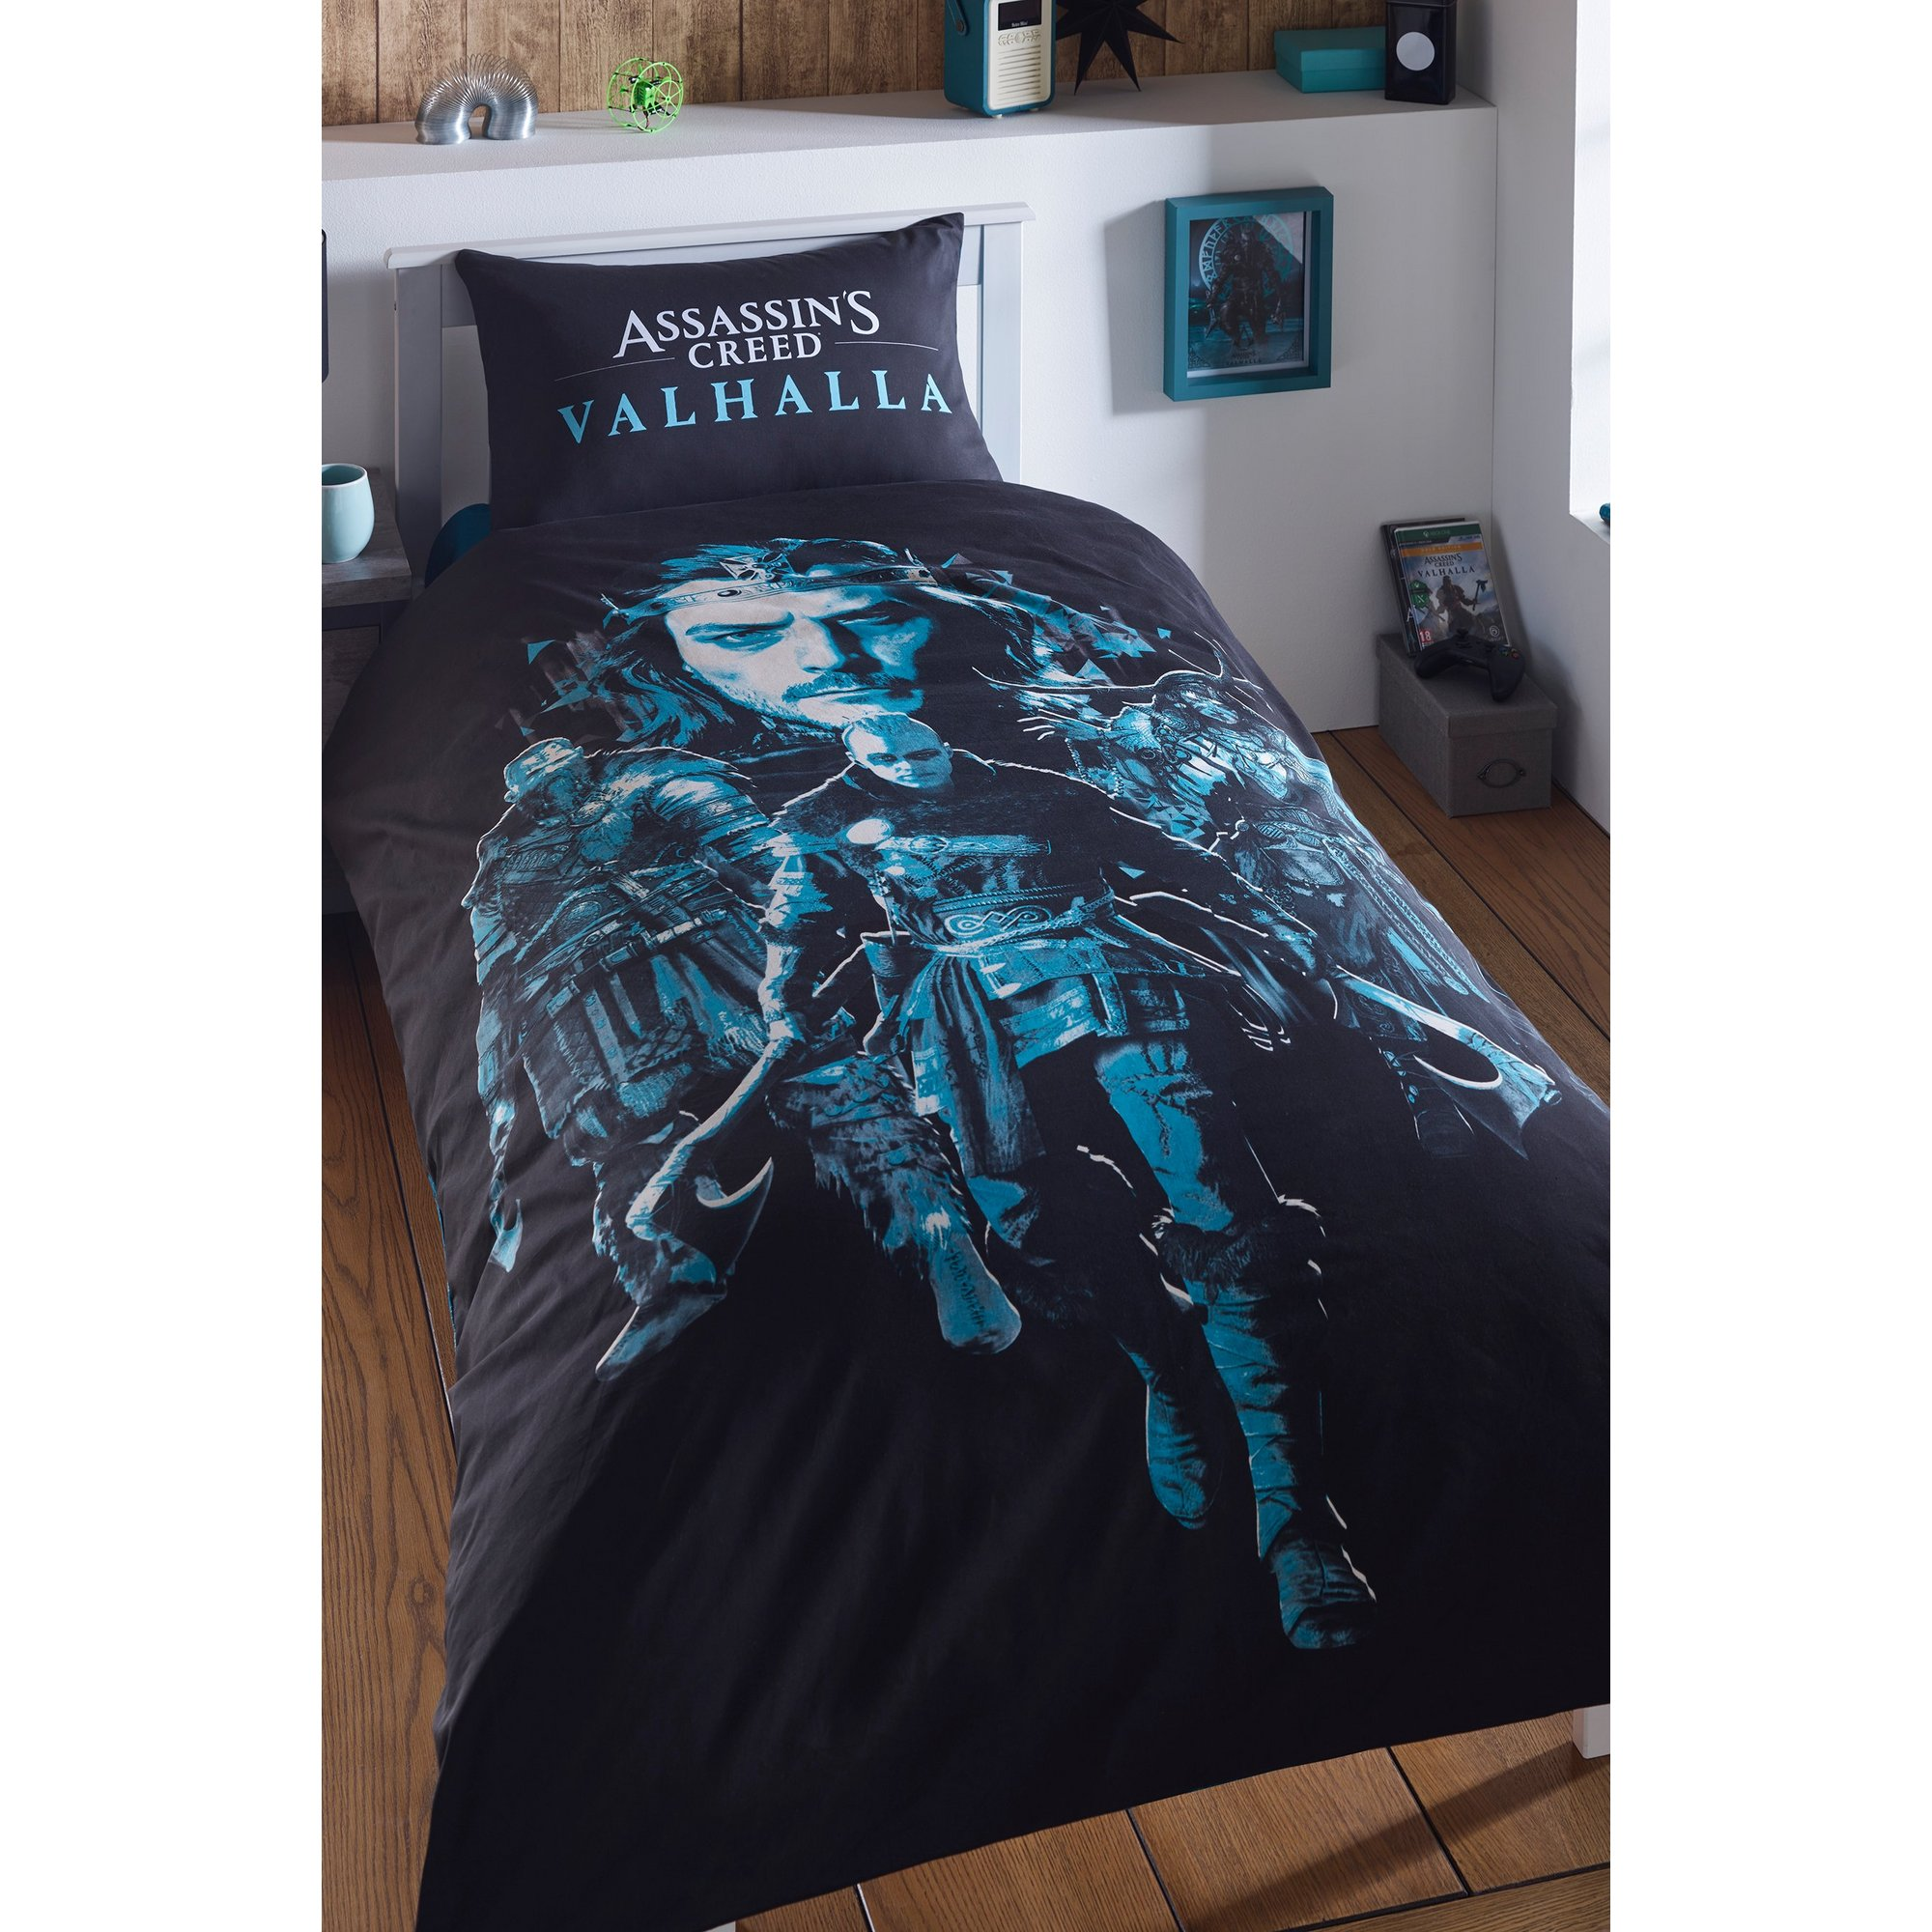 Image of Assassins Creed Valhalla Reversible Duvet Set